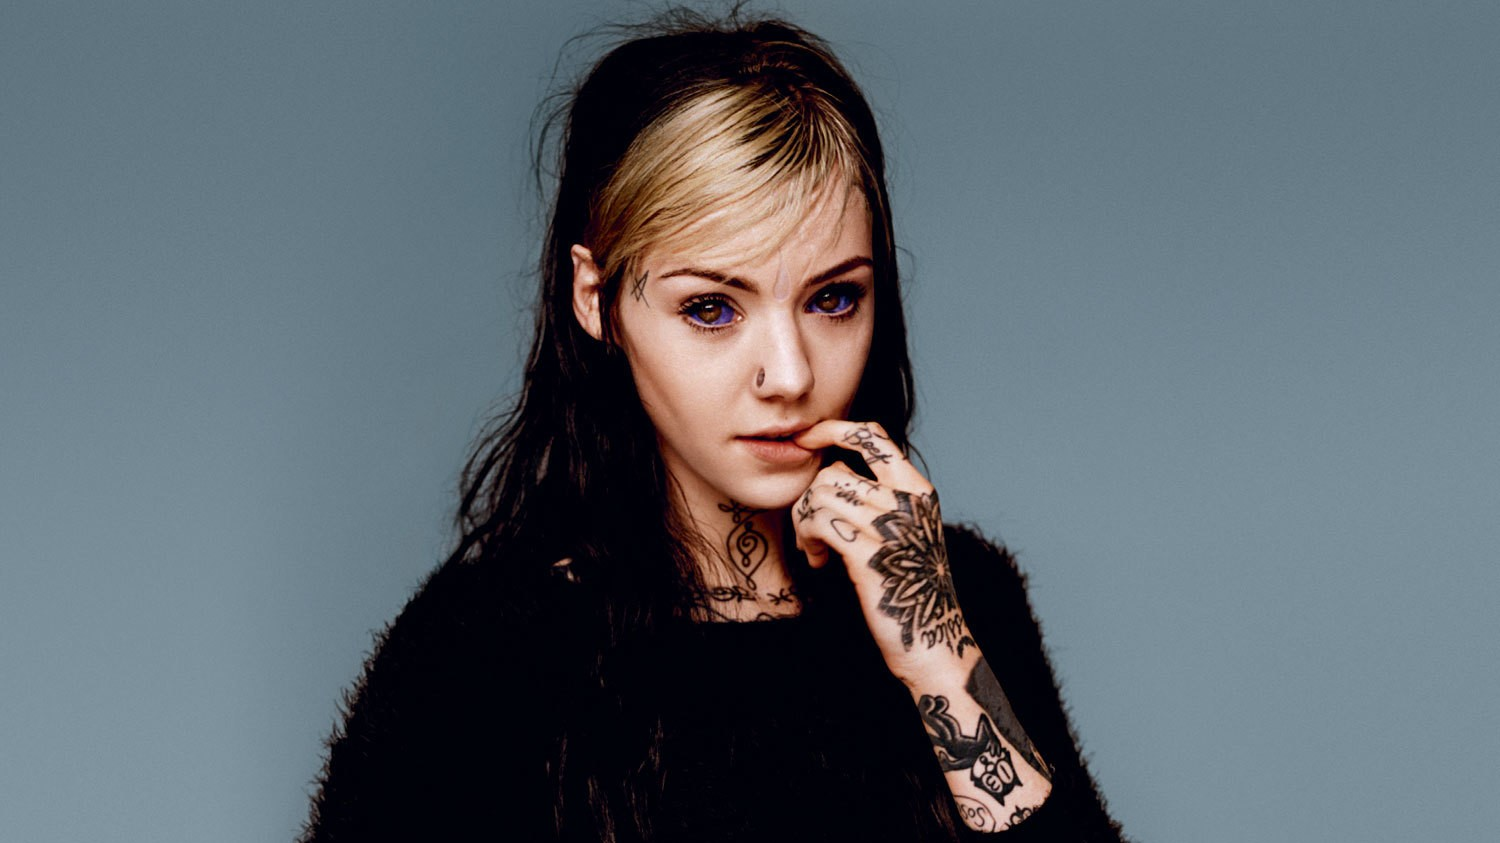 get to know otherworldly beauty grace neutral